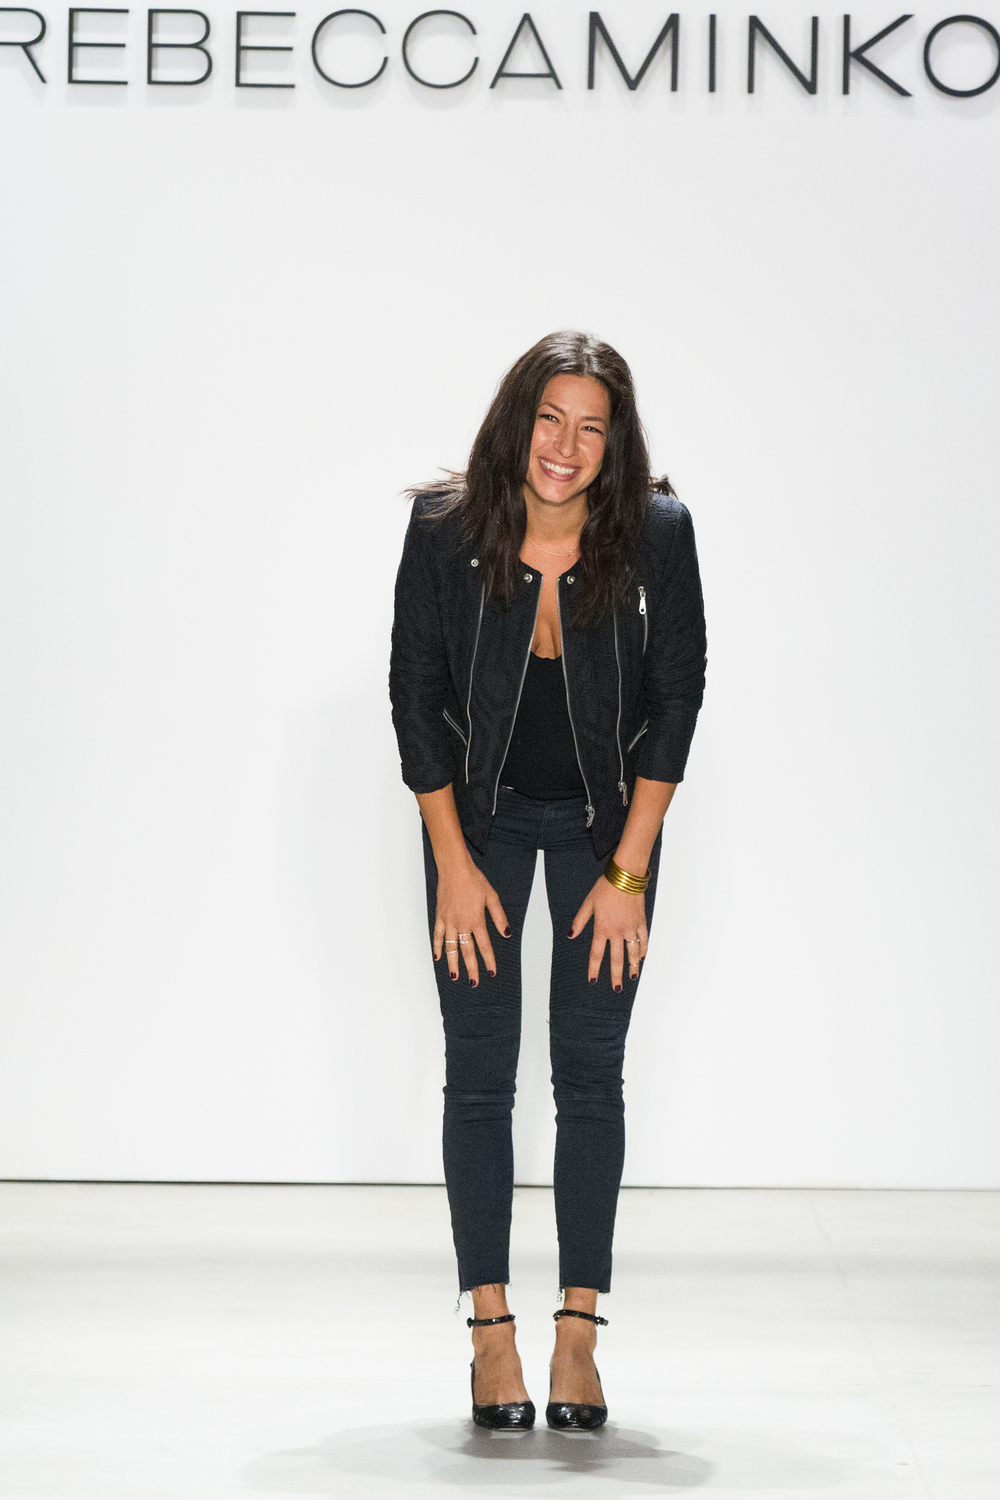 Rebecca Minkoff taking a bow at the end of her New York Fashion Week Spring-Summer 2016 show.